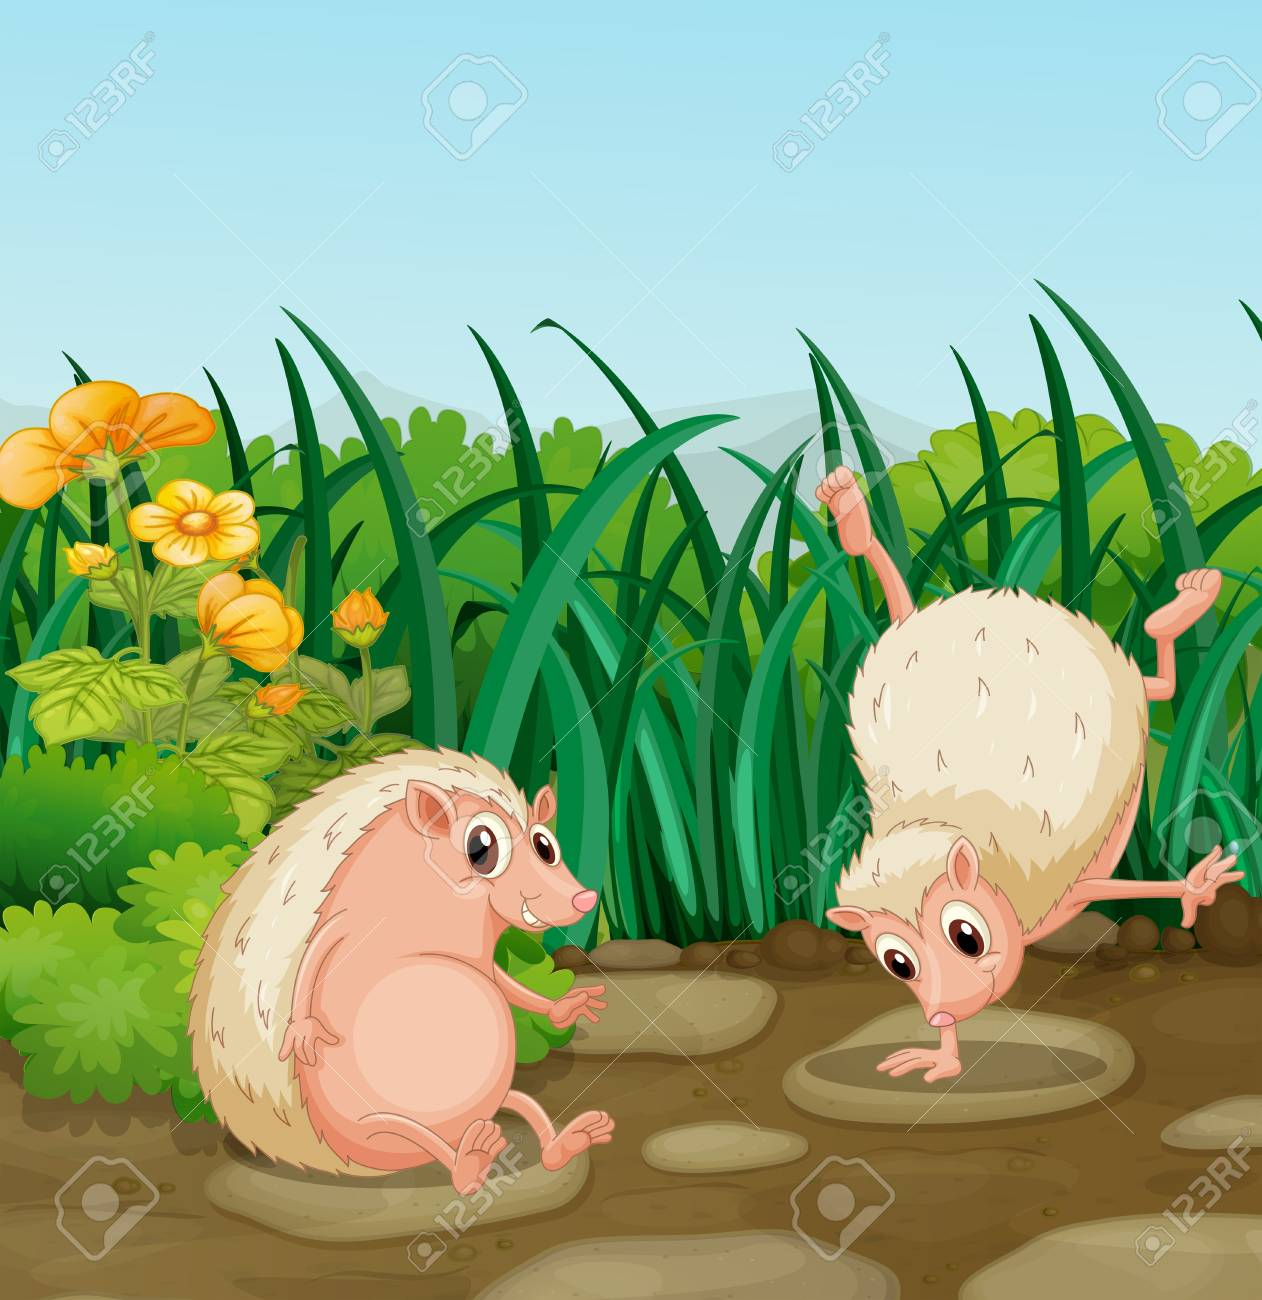 Illustration of the two wild animals near the weeds Stock Vector - 18549636